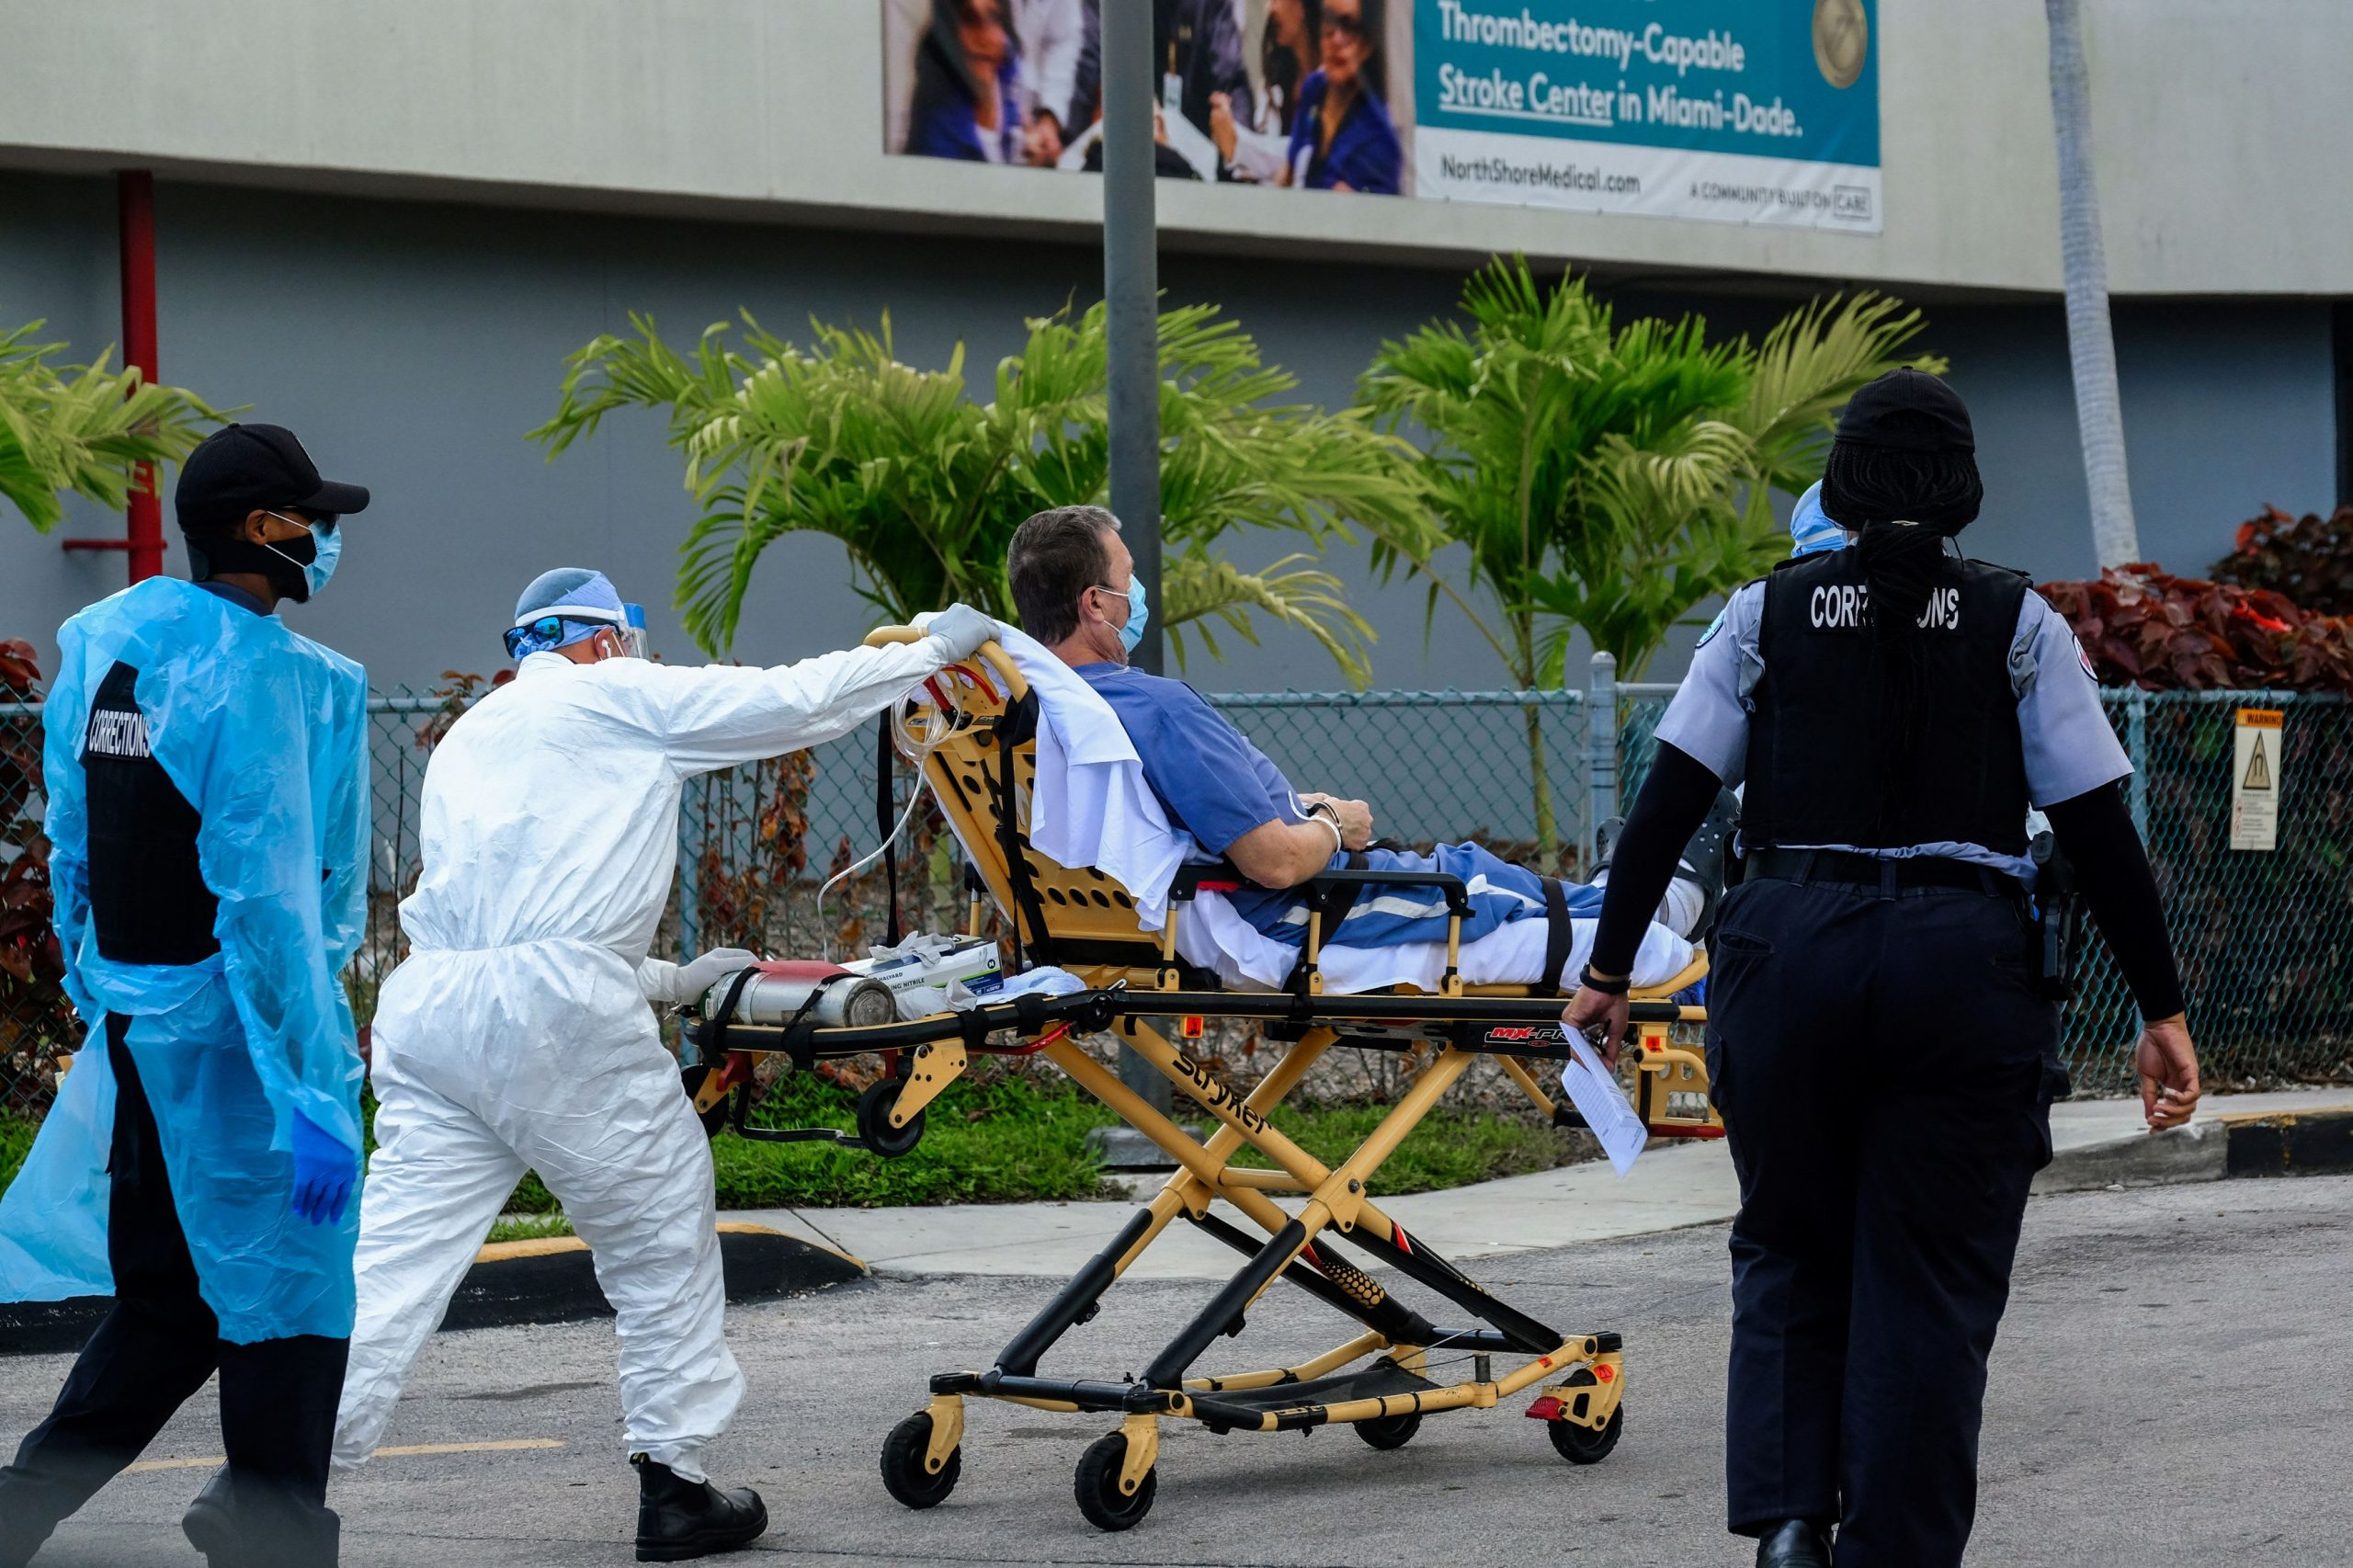 Covid cases, hospitalizations continue to surge as U.S. reaches 'critical point' in pandemic